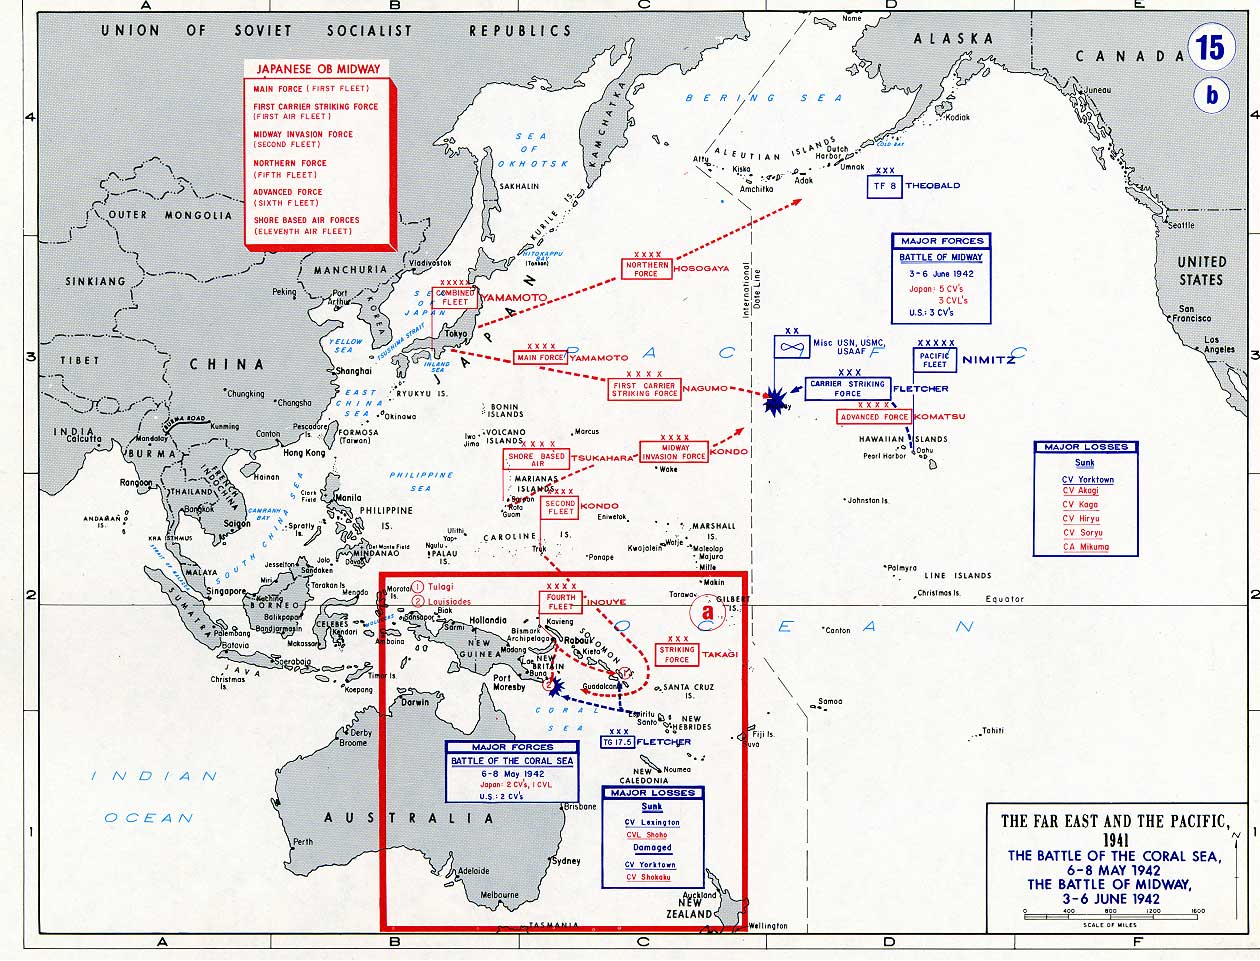 A Map WWII showing Battle of the Coral Sea and Battle of Midway 1942